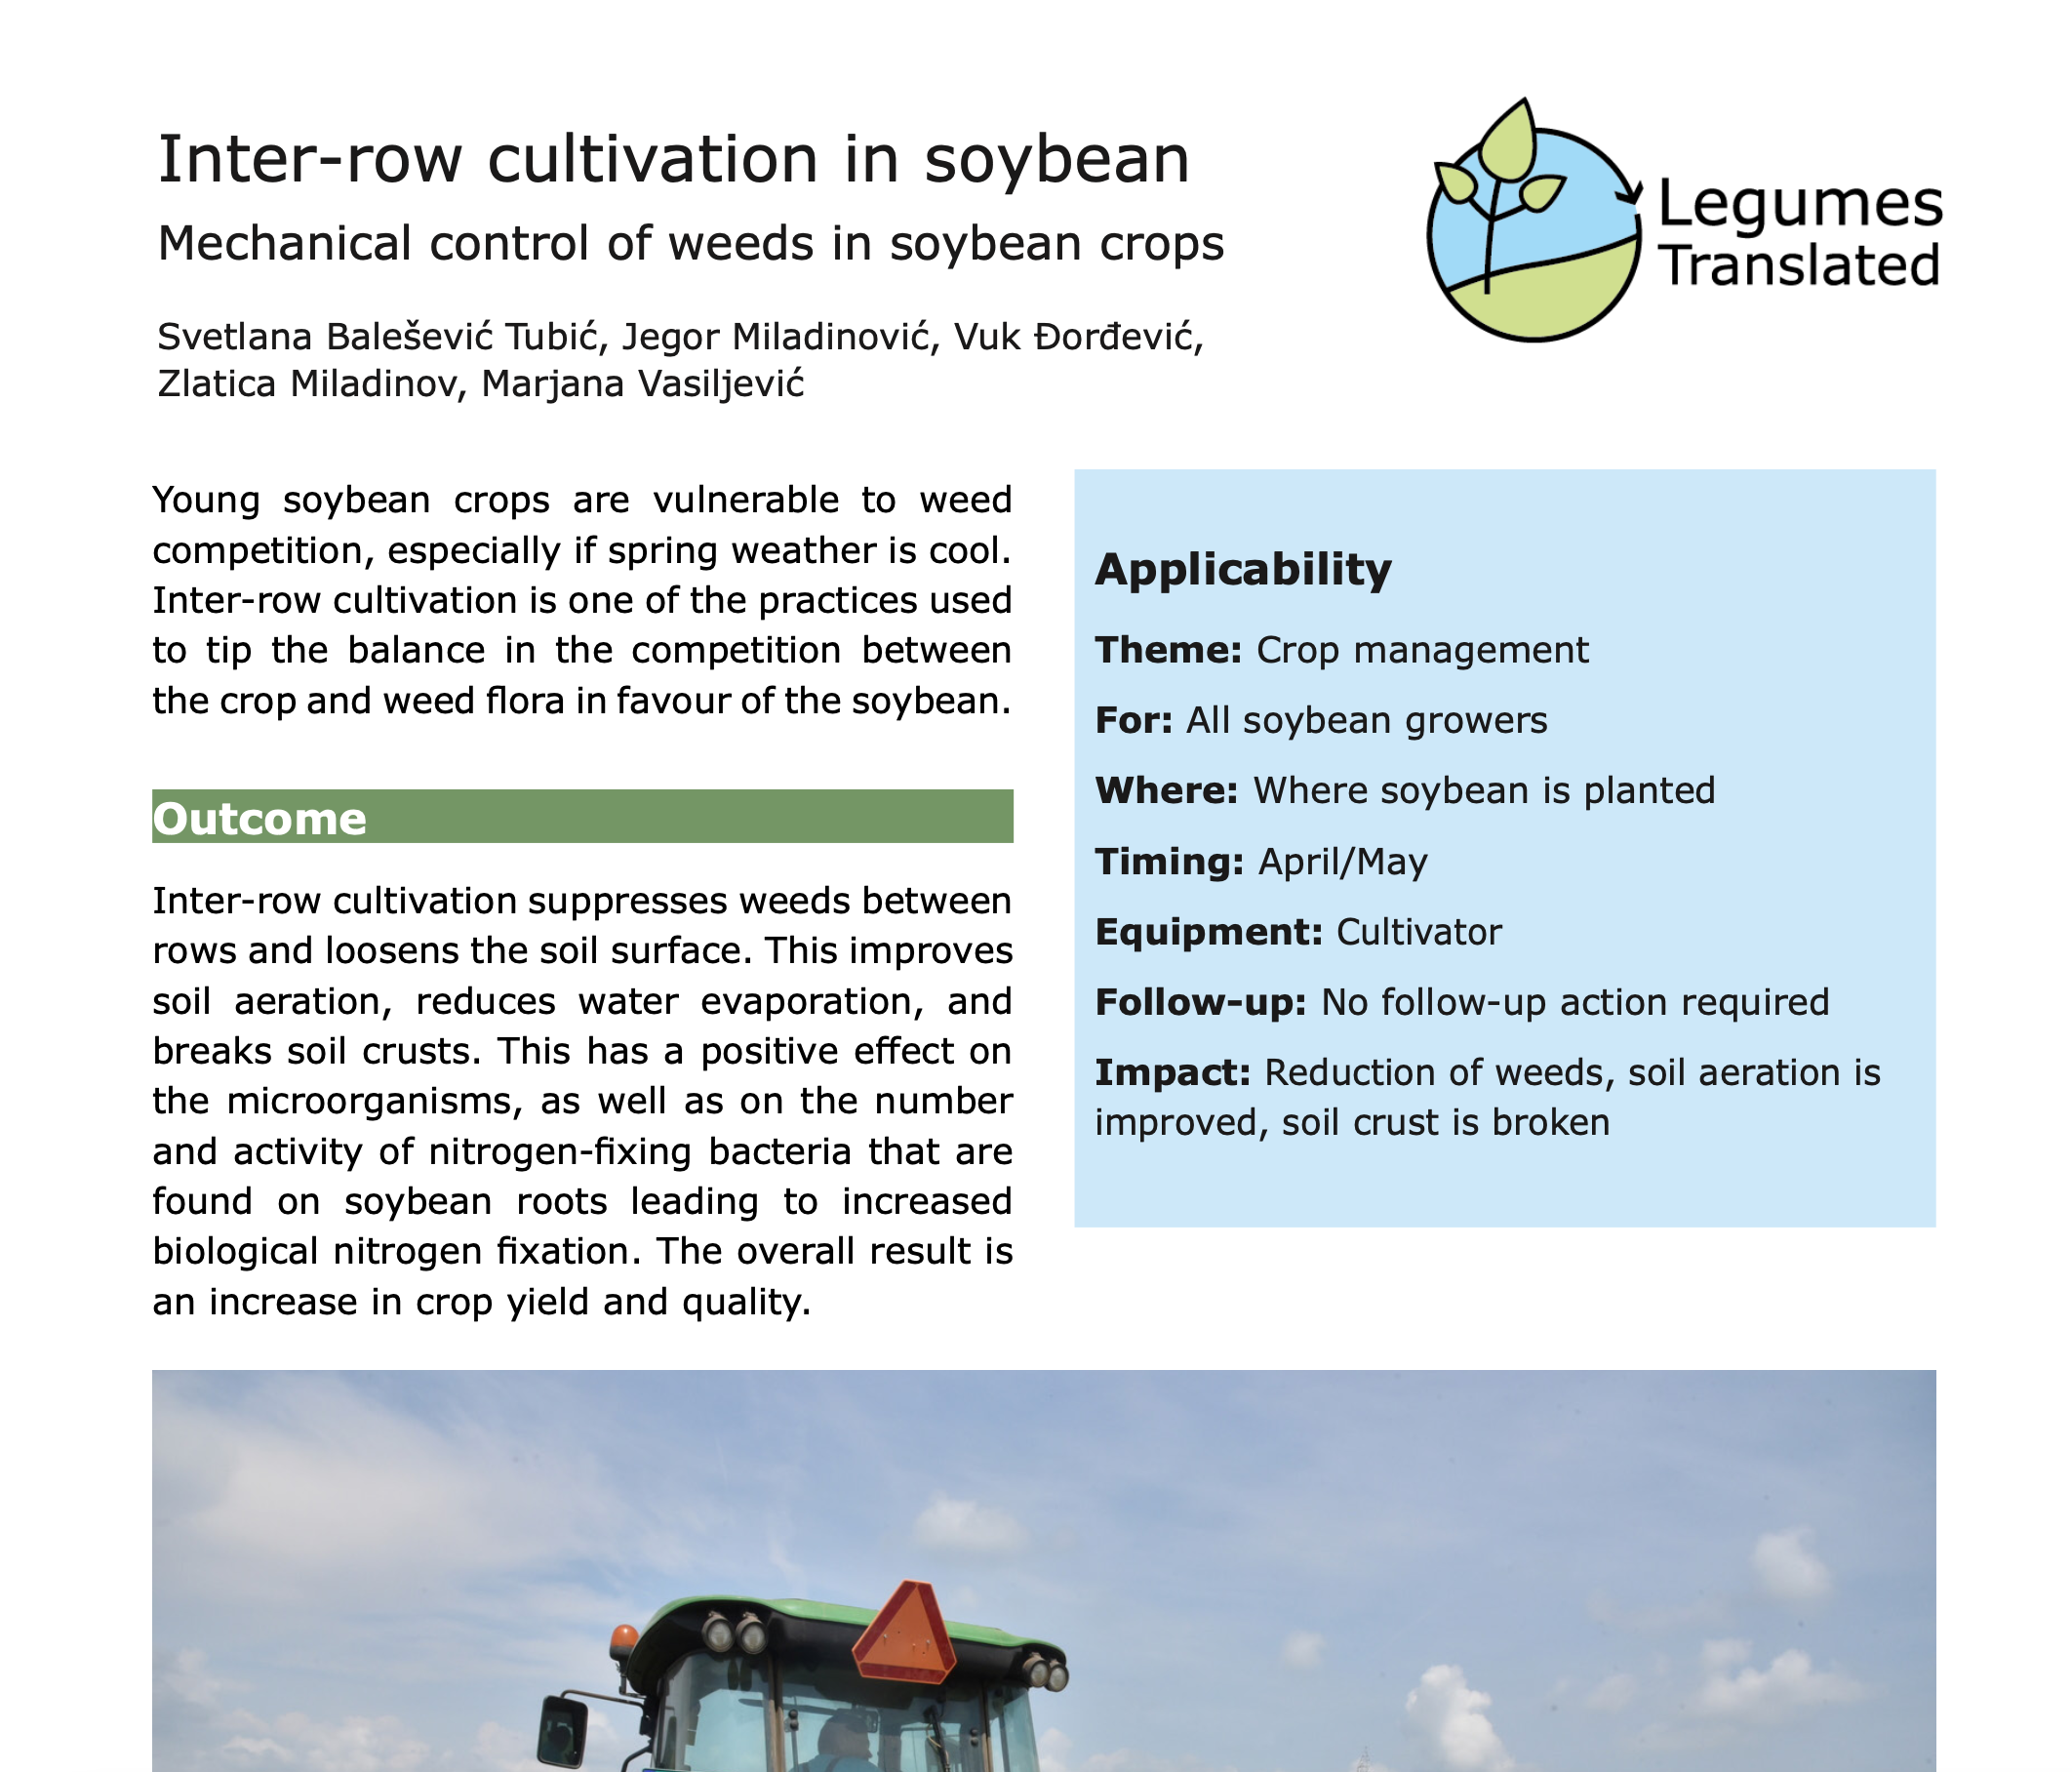 Inter-row cultivation - Mechanical control of weeds in soybean crops